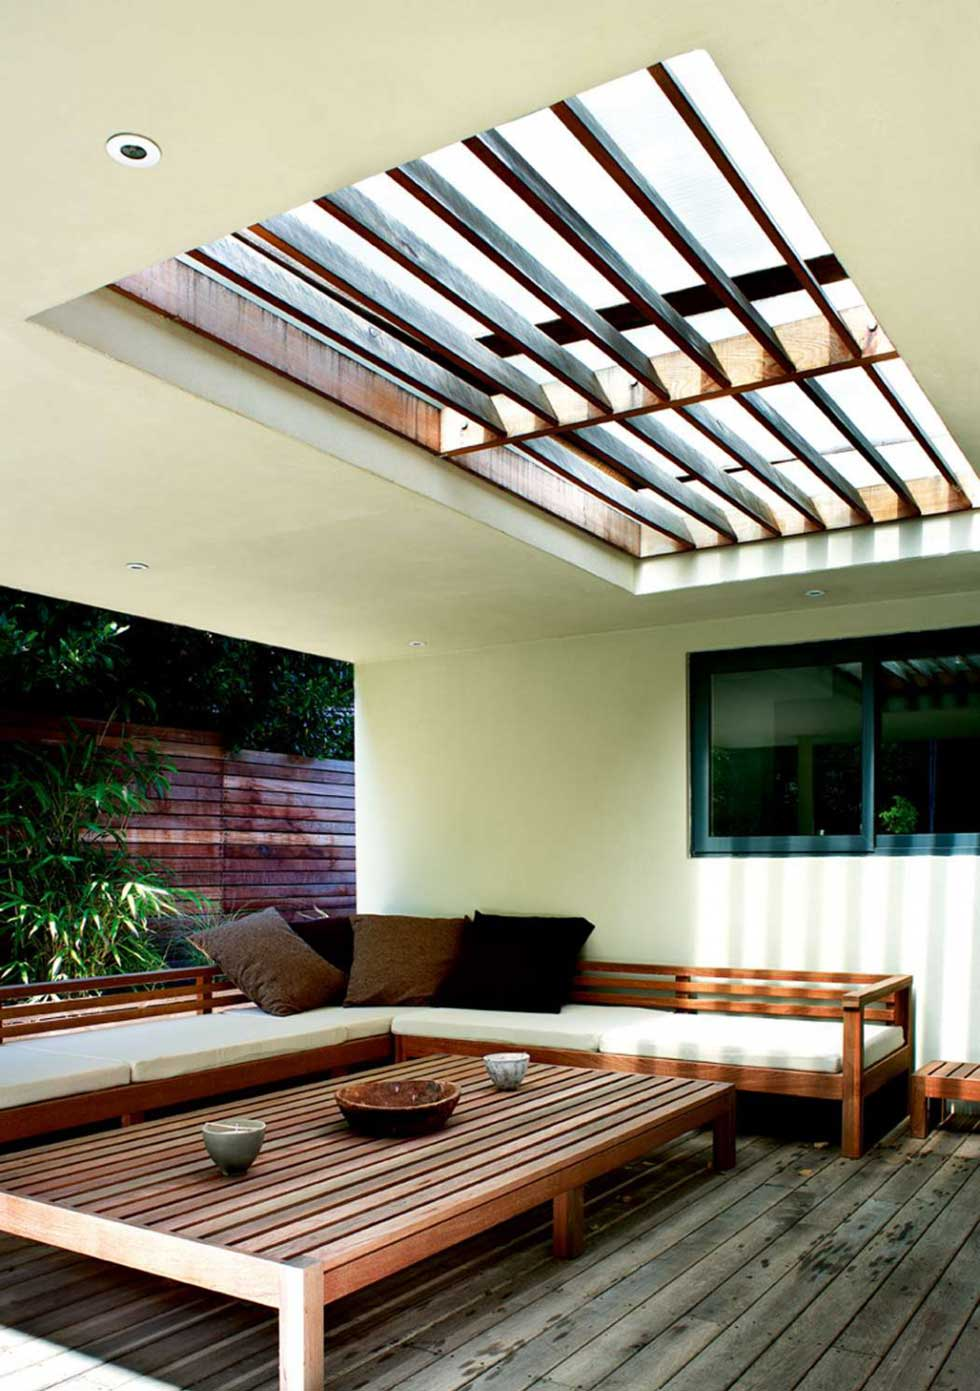 A garden room with wooden interiors and a rooflight